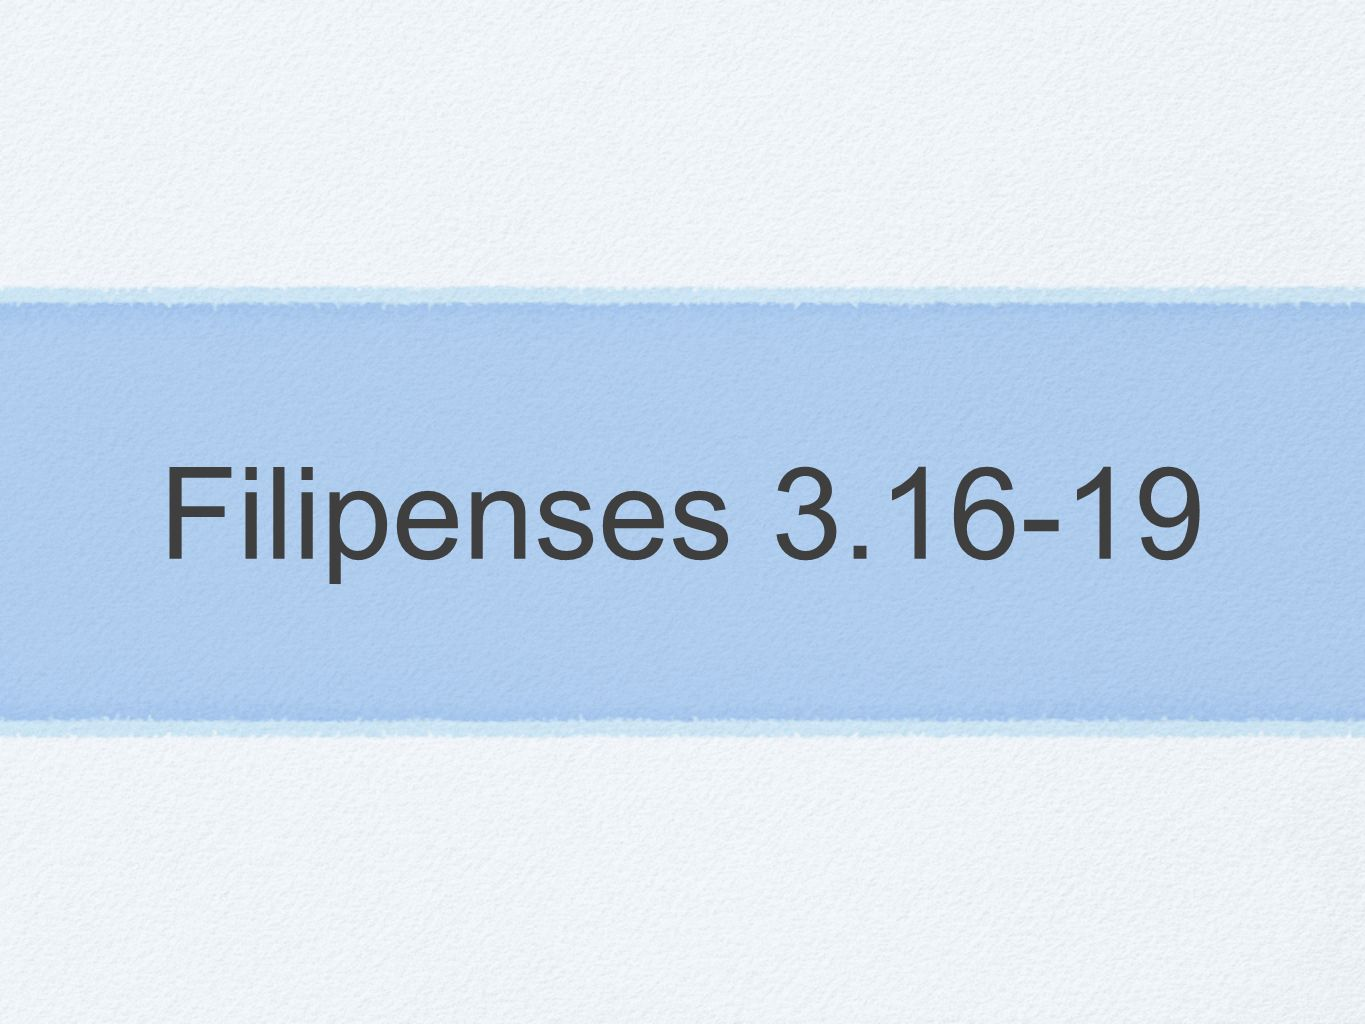 Filipenses 3.16-19